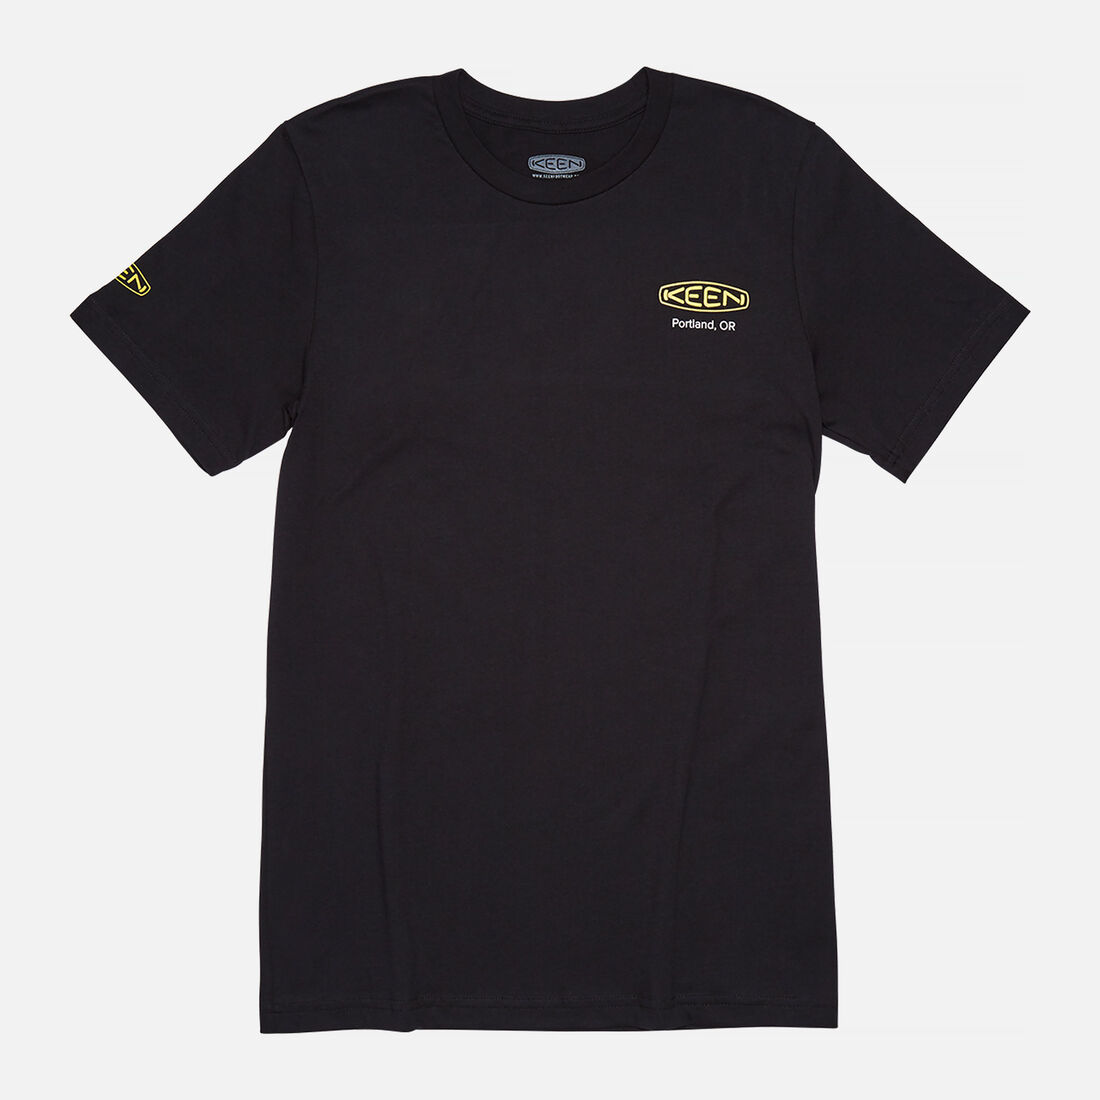 Men's KEEN PDX T-SHIRT in Black - large view.